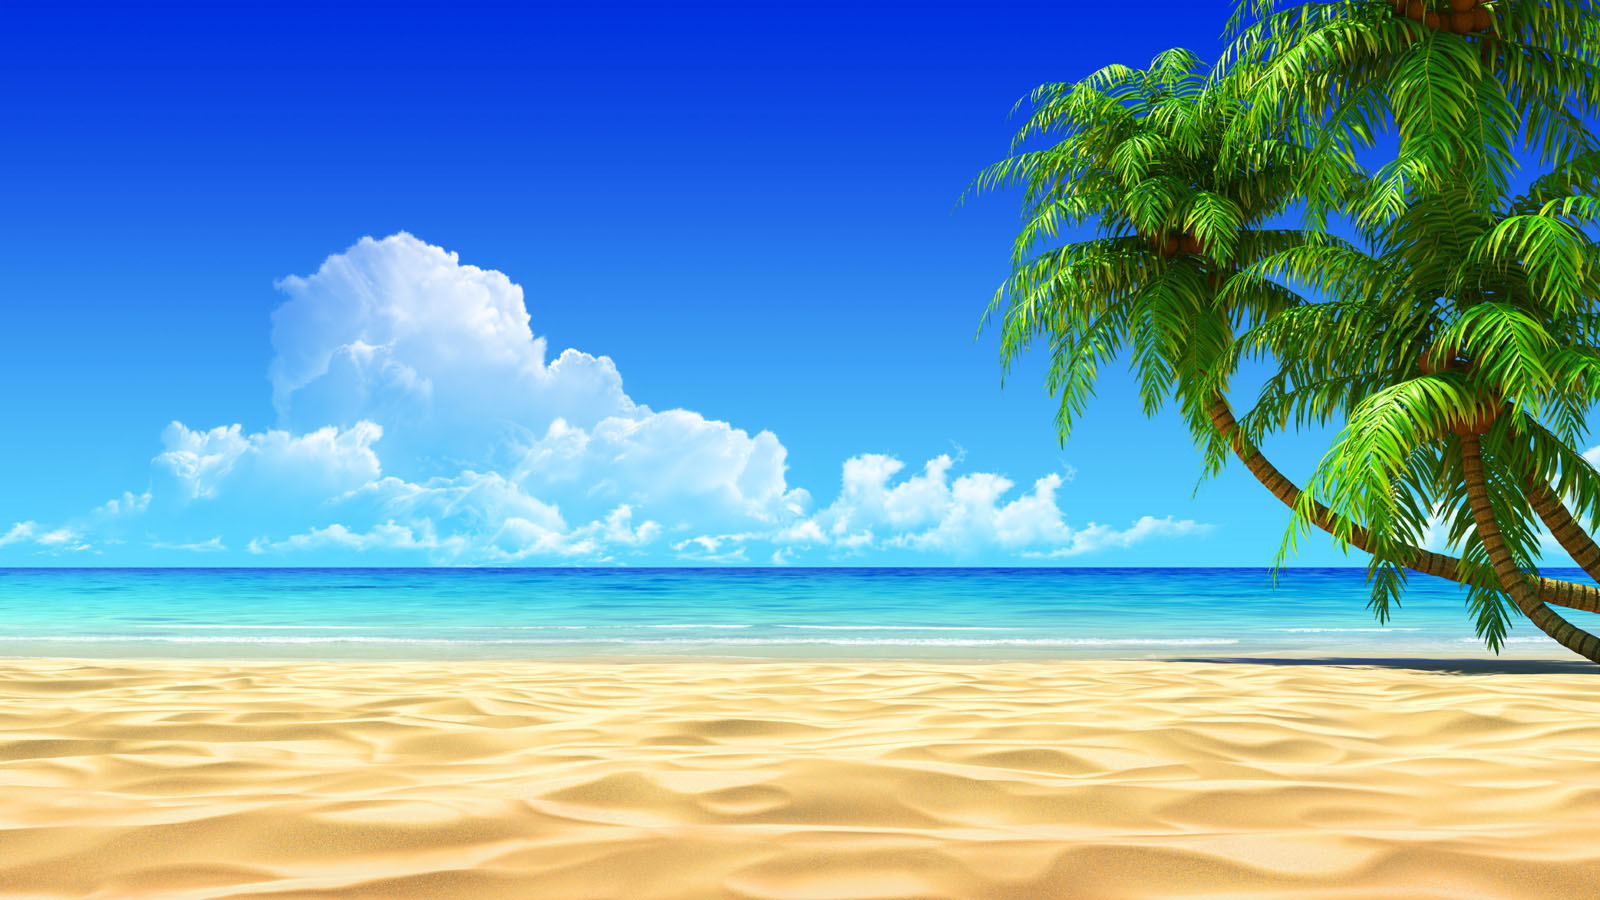 Daily hd wallpaper  Beach and sand wallpaper 3D